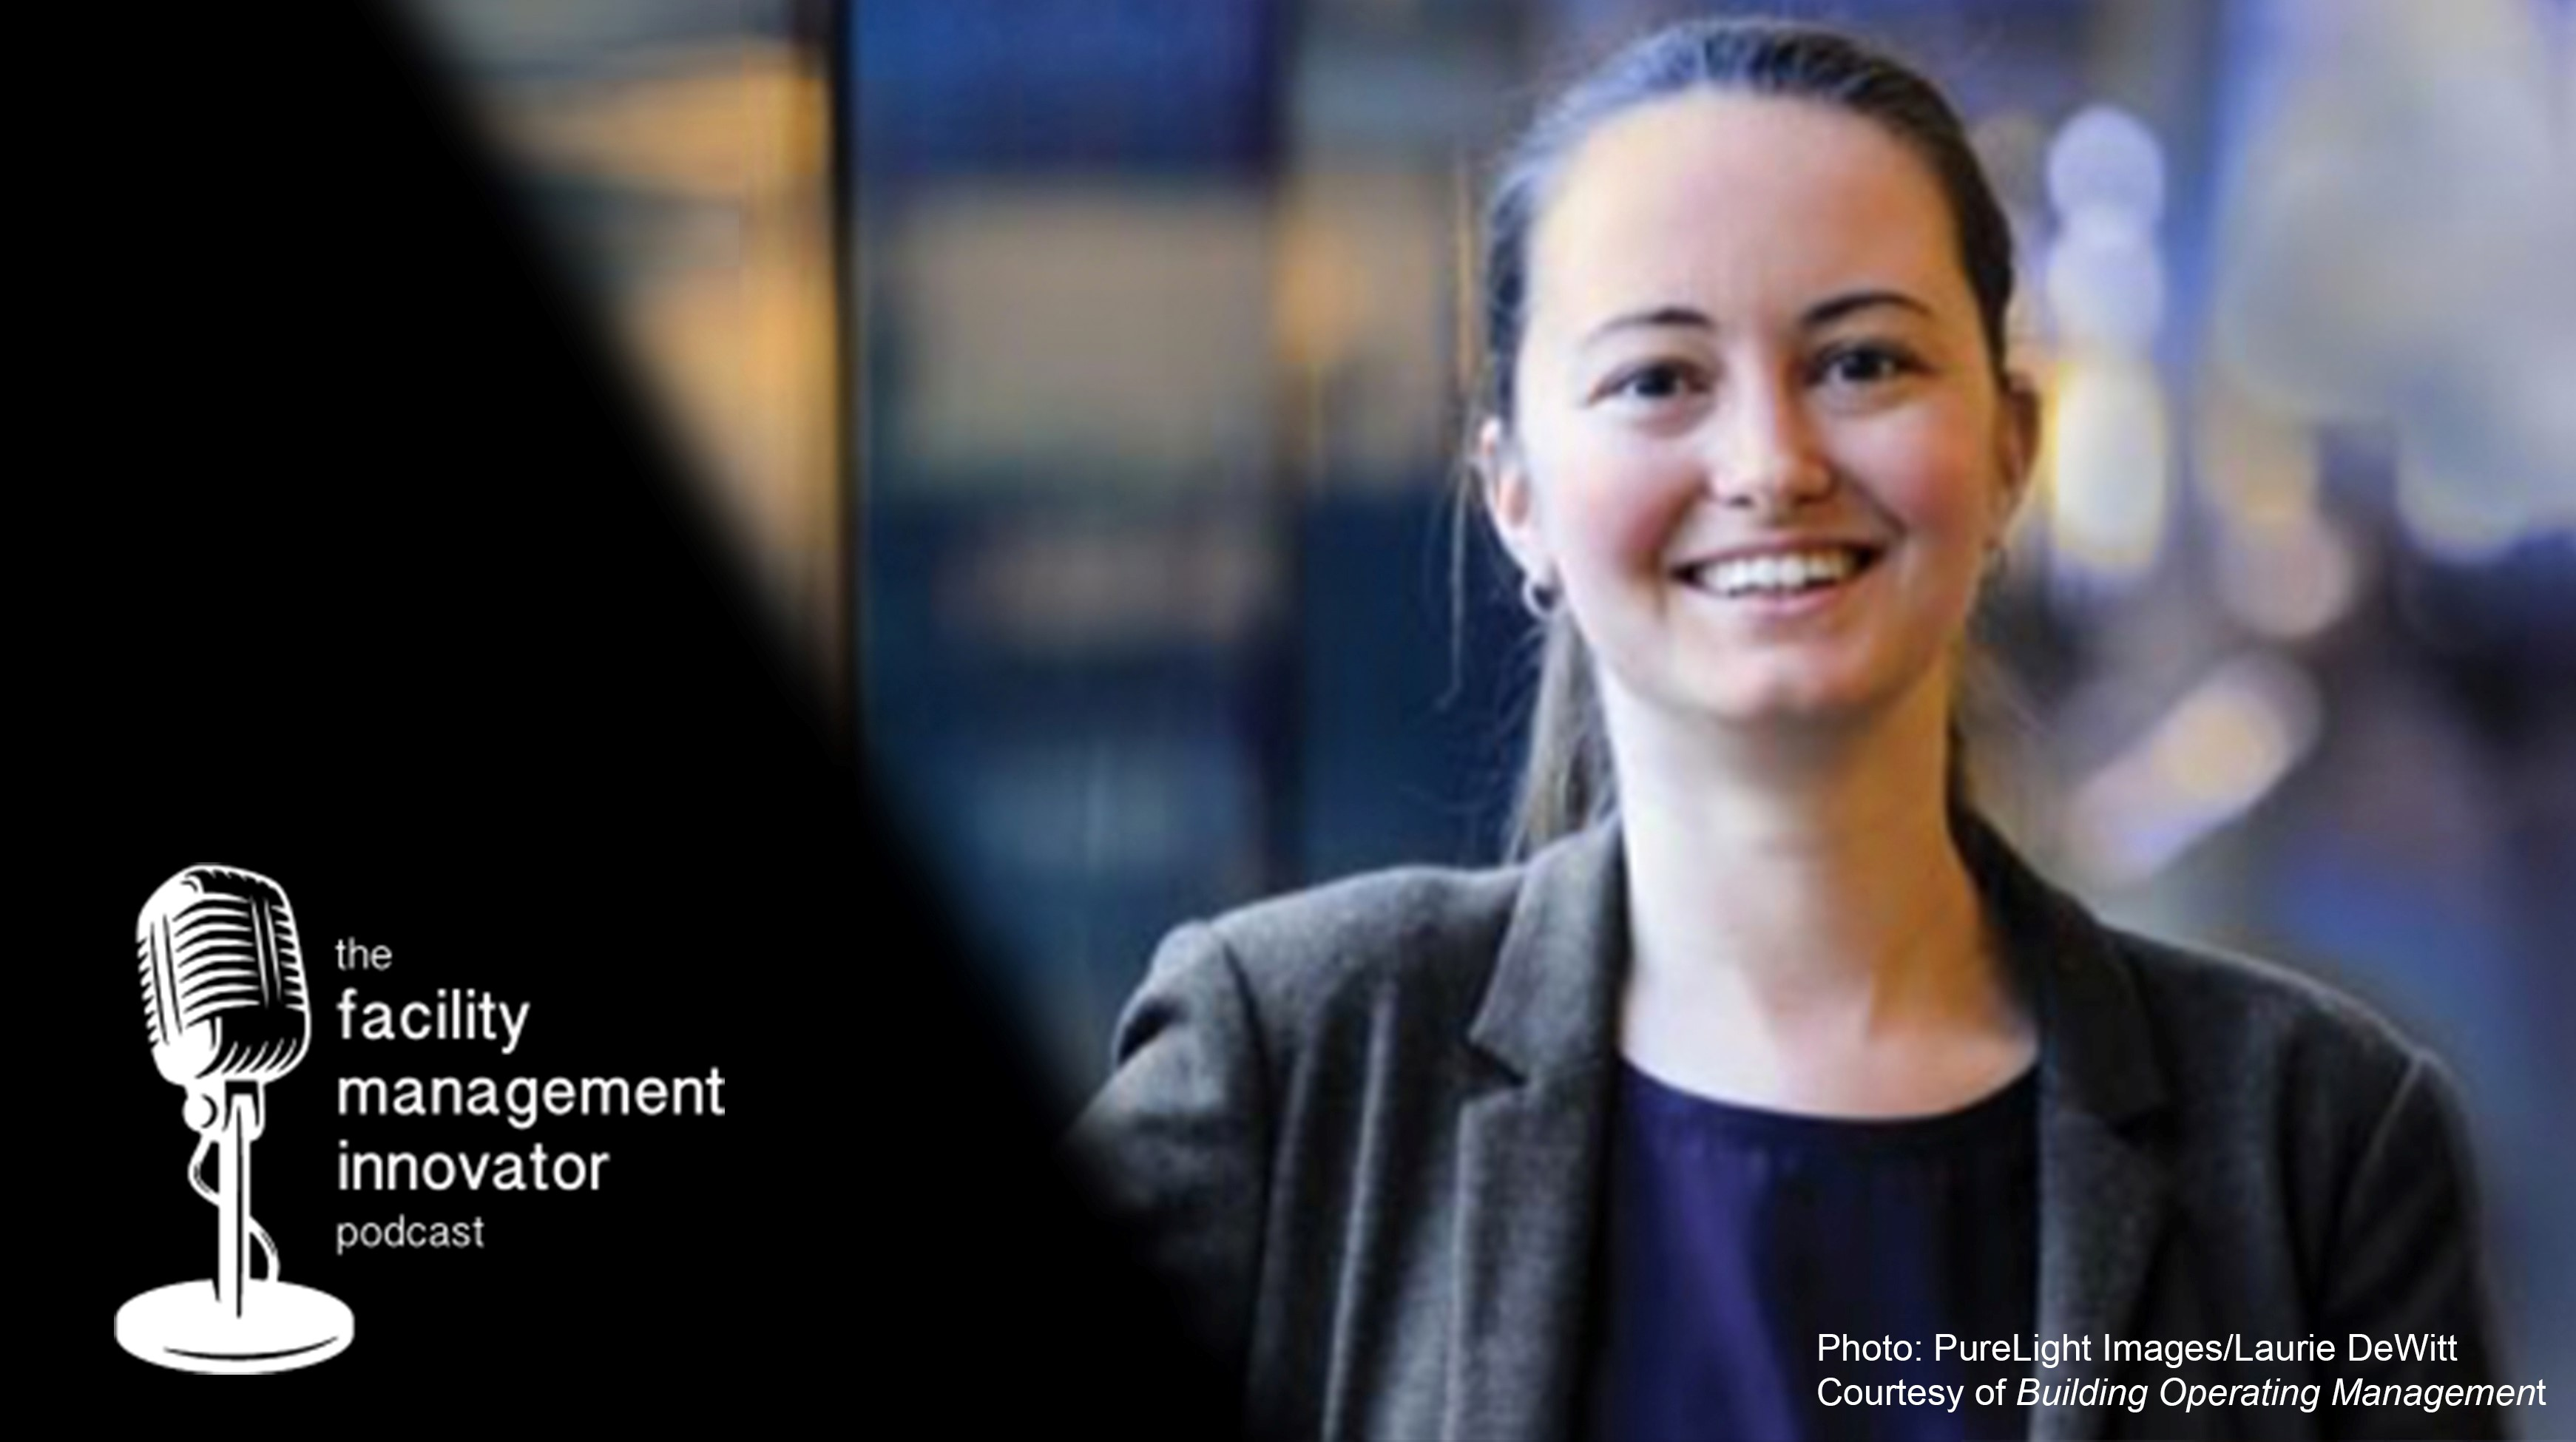 Ep. 65: Next Generation Facility Management | An Interview with Caroline Horton, FMP